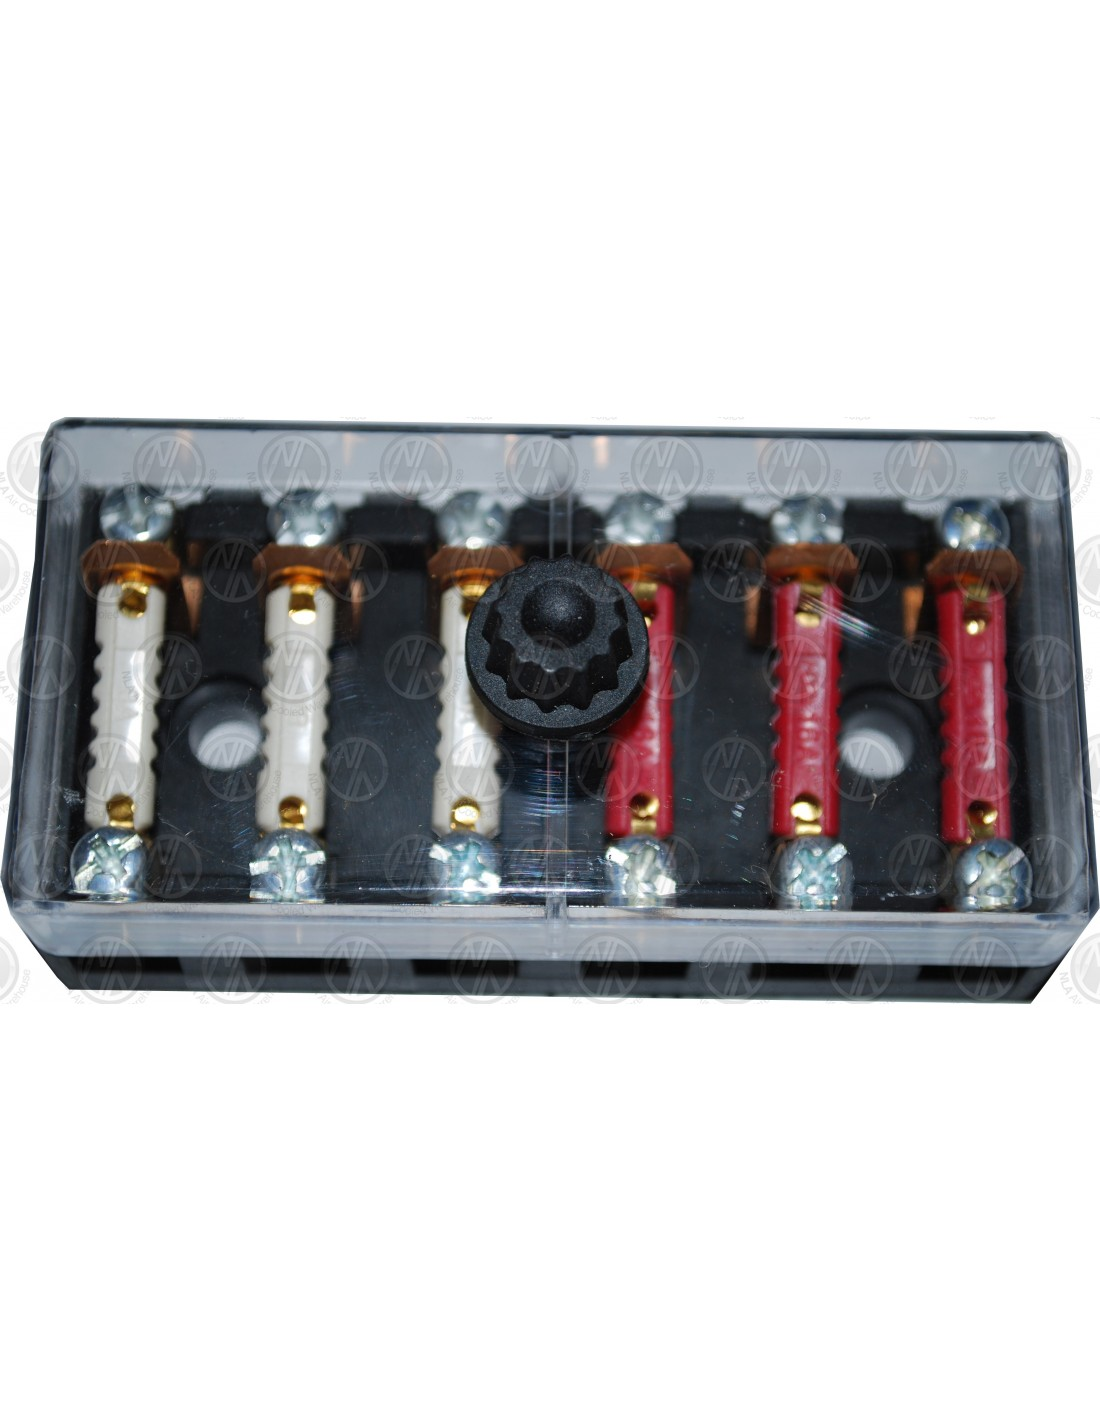 6 Way Auxiliary Fuse Box With Fuses